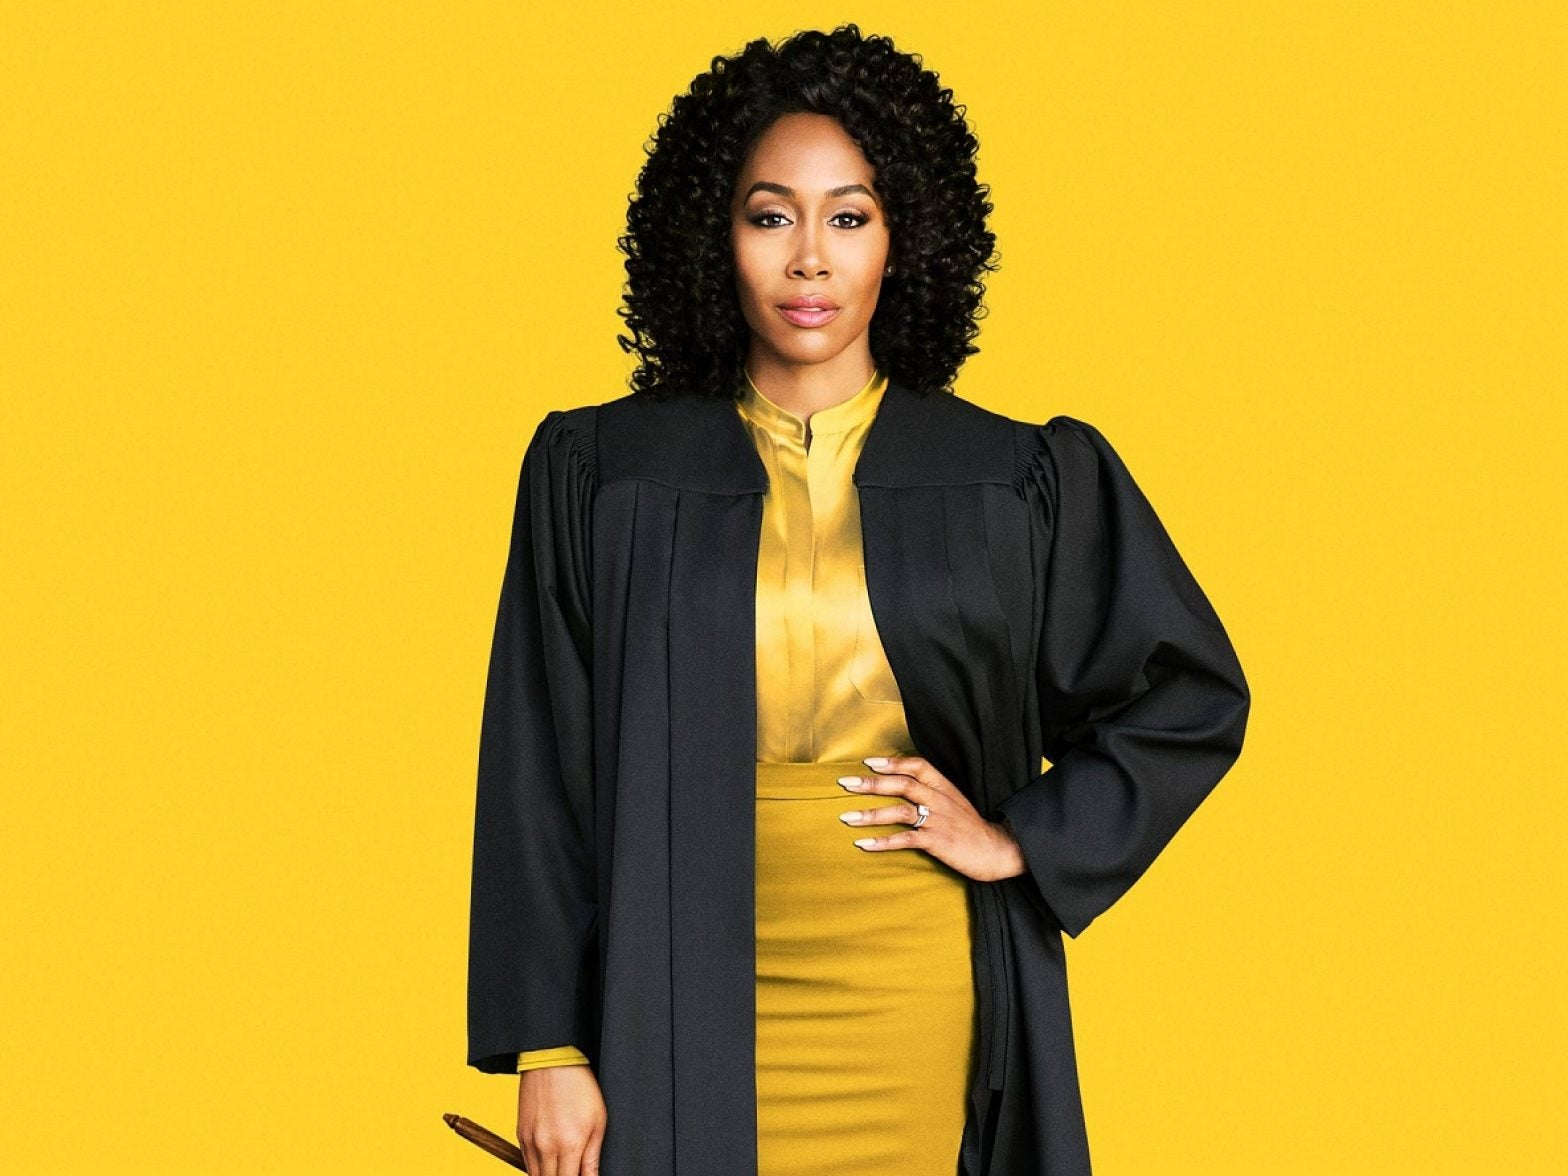 These Fictional Black Women Bosses Will Inspire You To Level Up